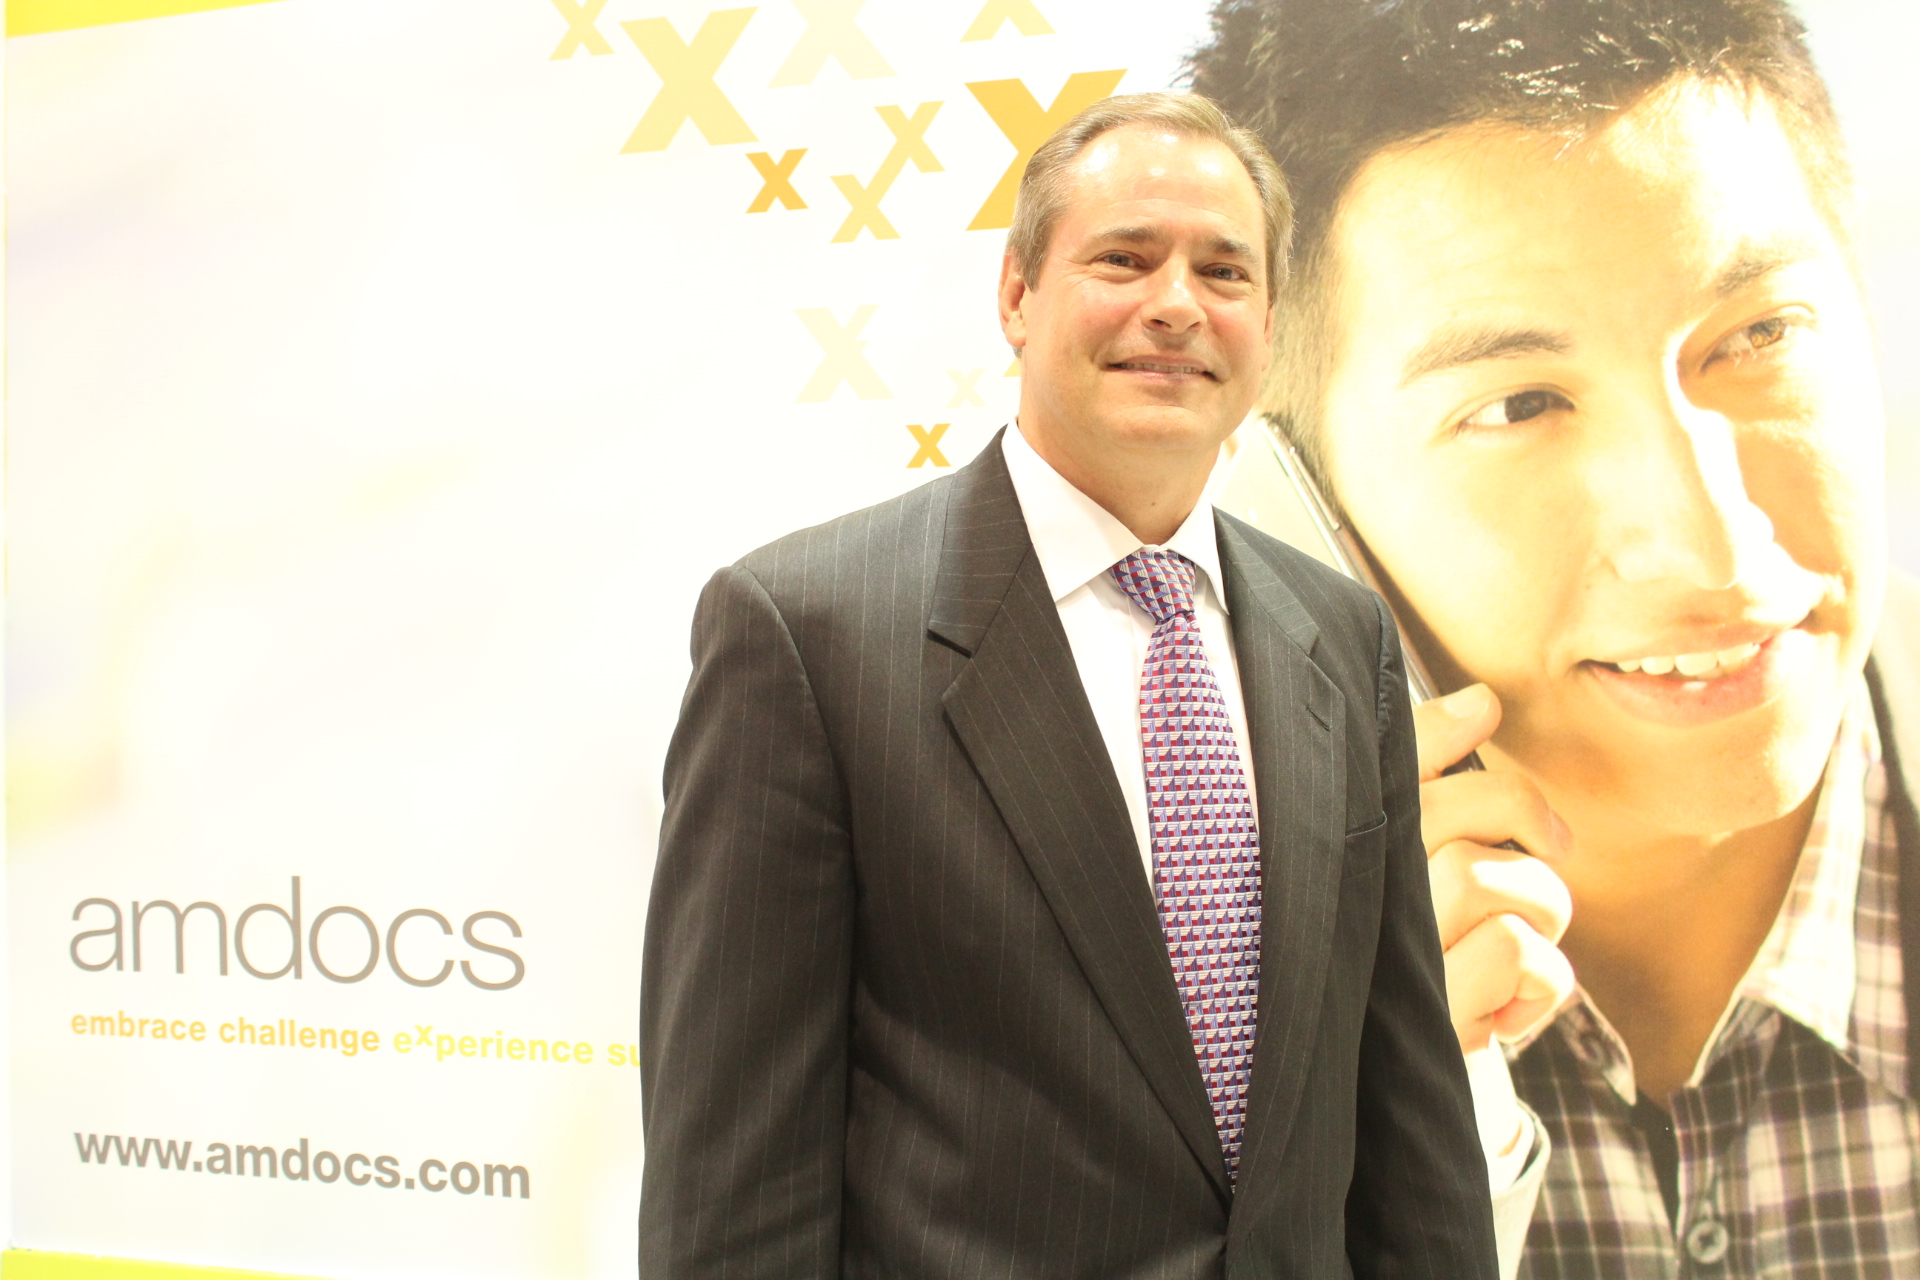 Christopher K. Williams - Head of Global Marketing, Amdocs